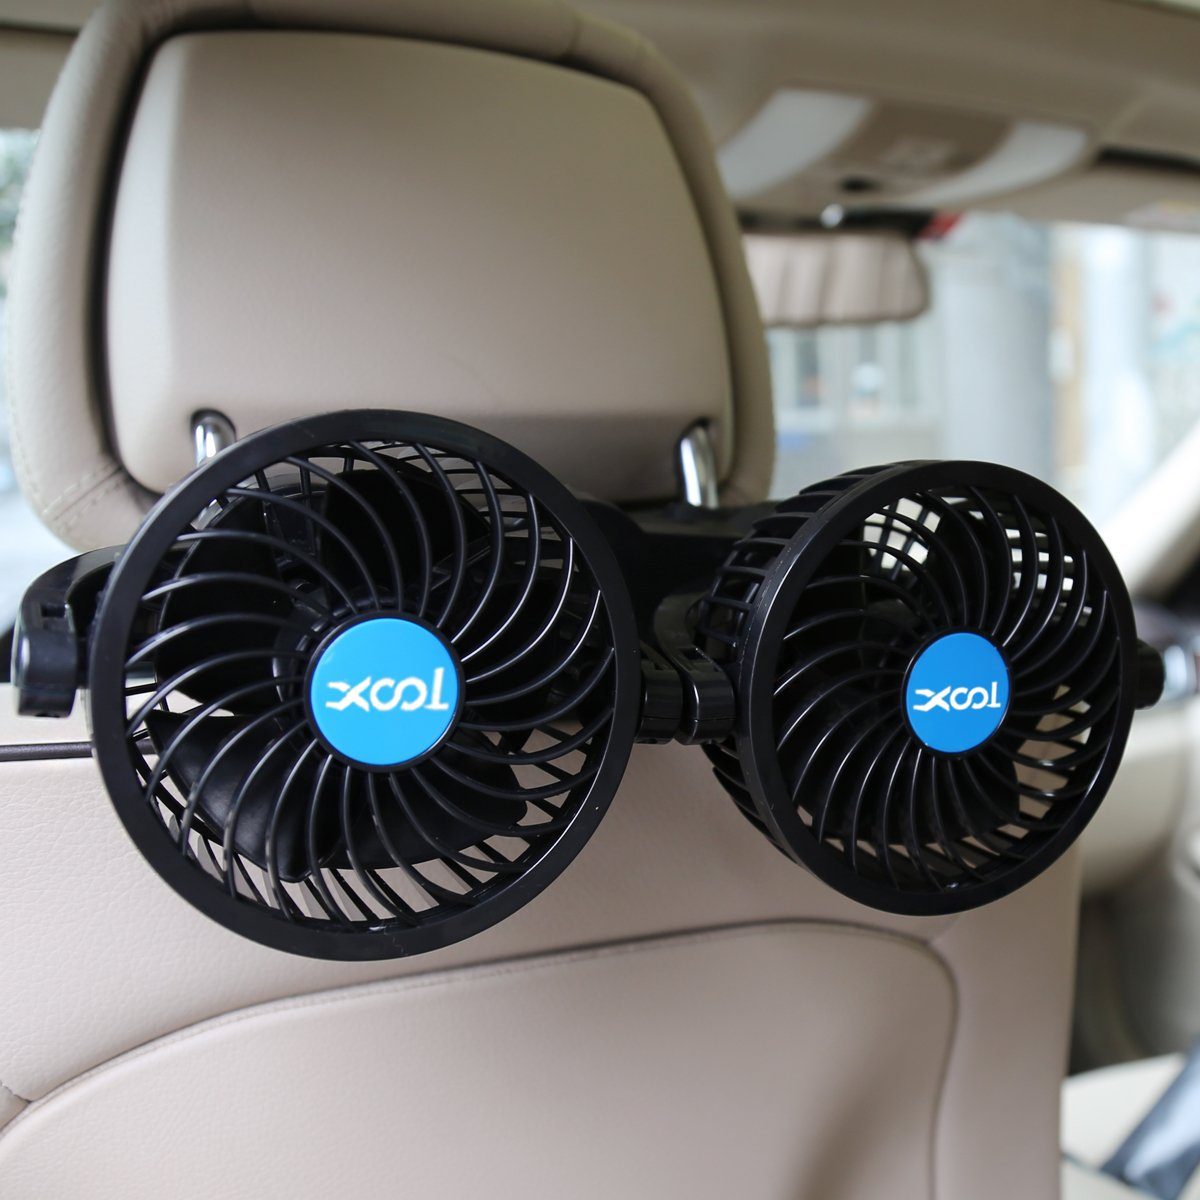 Car Fan, Electric Car Fans for Rear Seat Passenger Portable Car Seat Fan Headrest 360 Degree Rotatable Backseat Car Fan 12V Cooling Air Fan with Stepless Speed Regulation for SUV, RV, Vehicles by XOOL